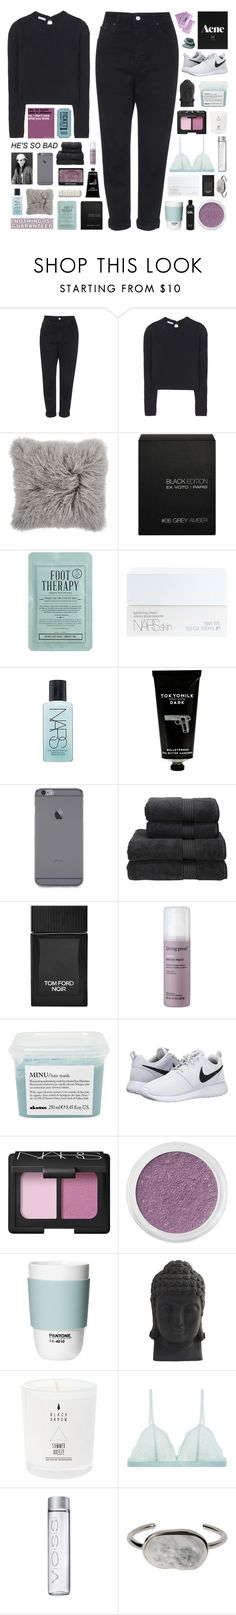 """COLLAB WITH ELENA ♡"" by other-flying ❤ liked on Polyvore featuring Topshop, Miu Miu, Ex Voto Paris, Kocostar, NARS Cosmetics, TokyoMilk, Christy, Tom Ford, Living Proof and Davines"